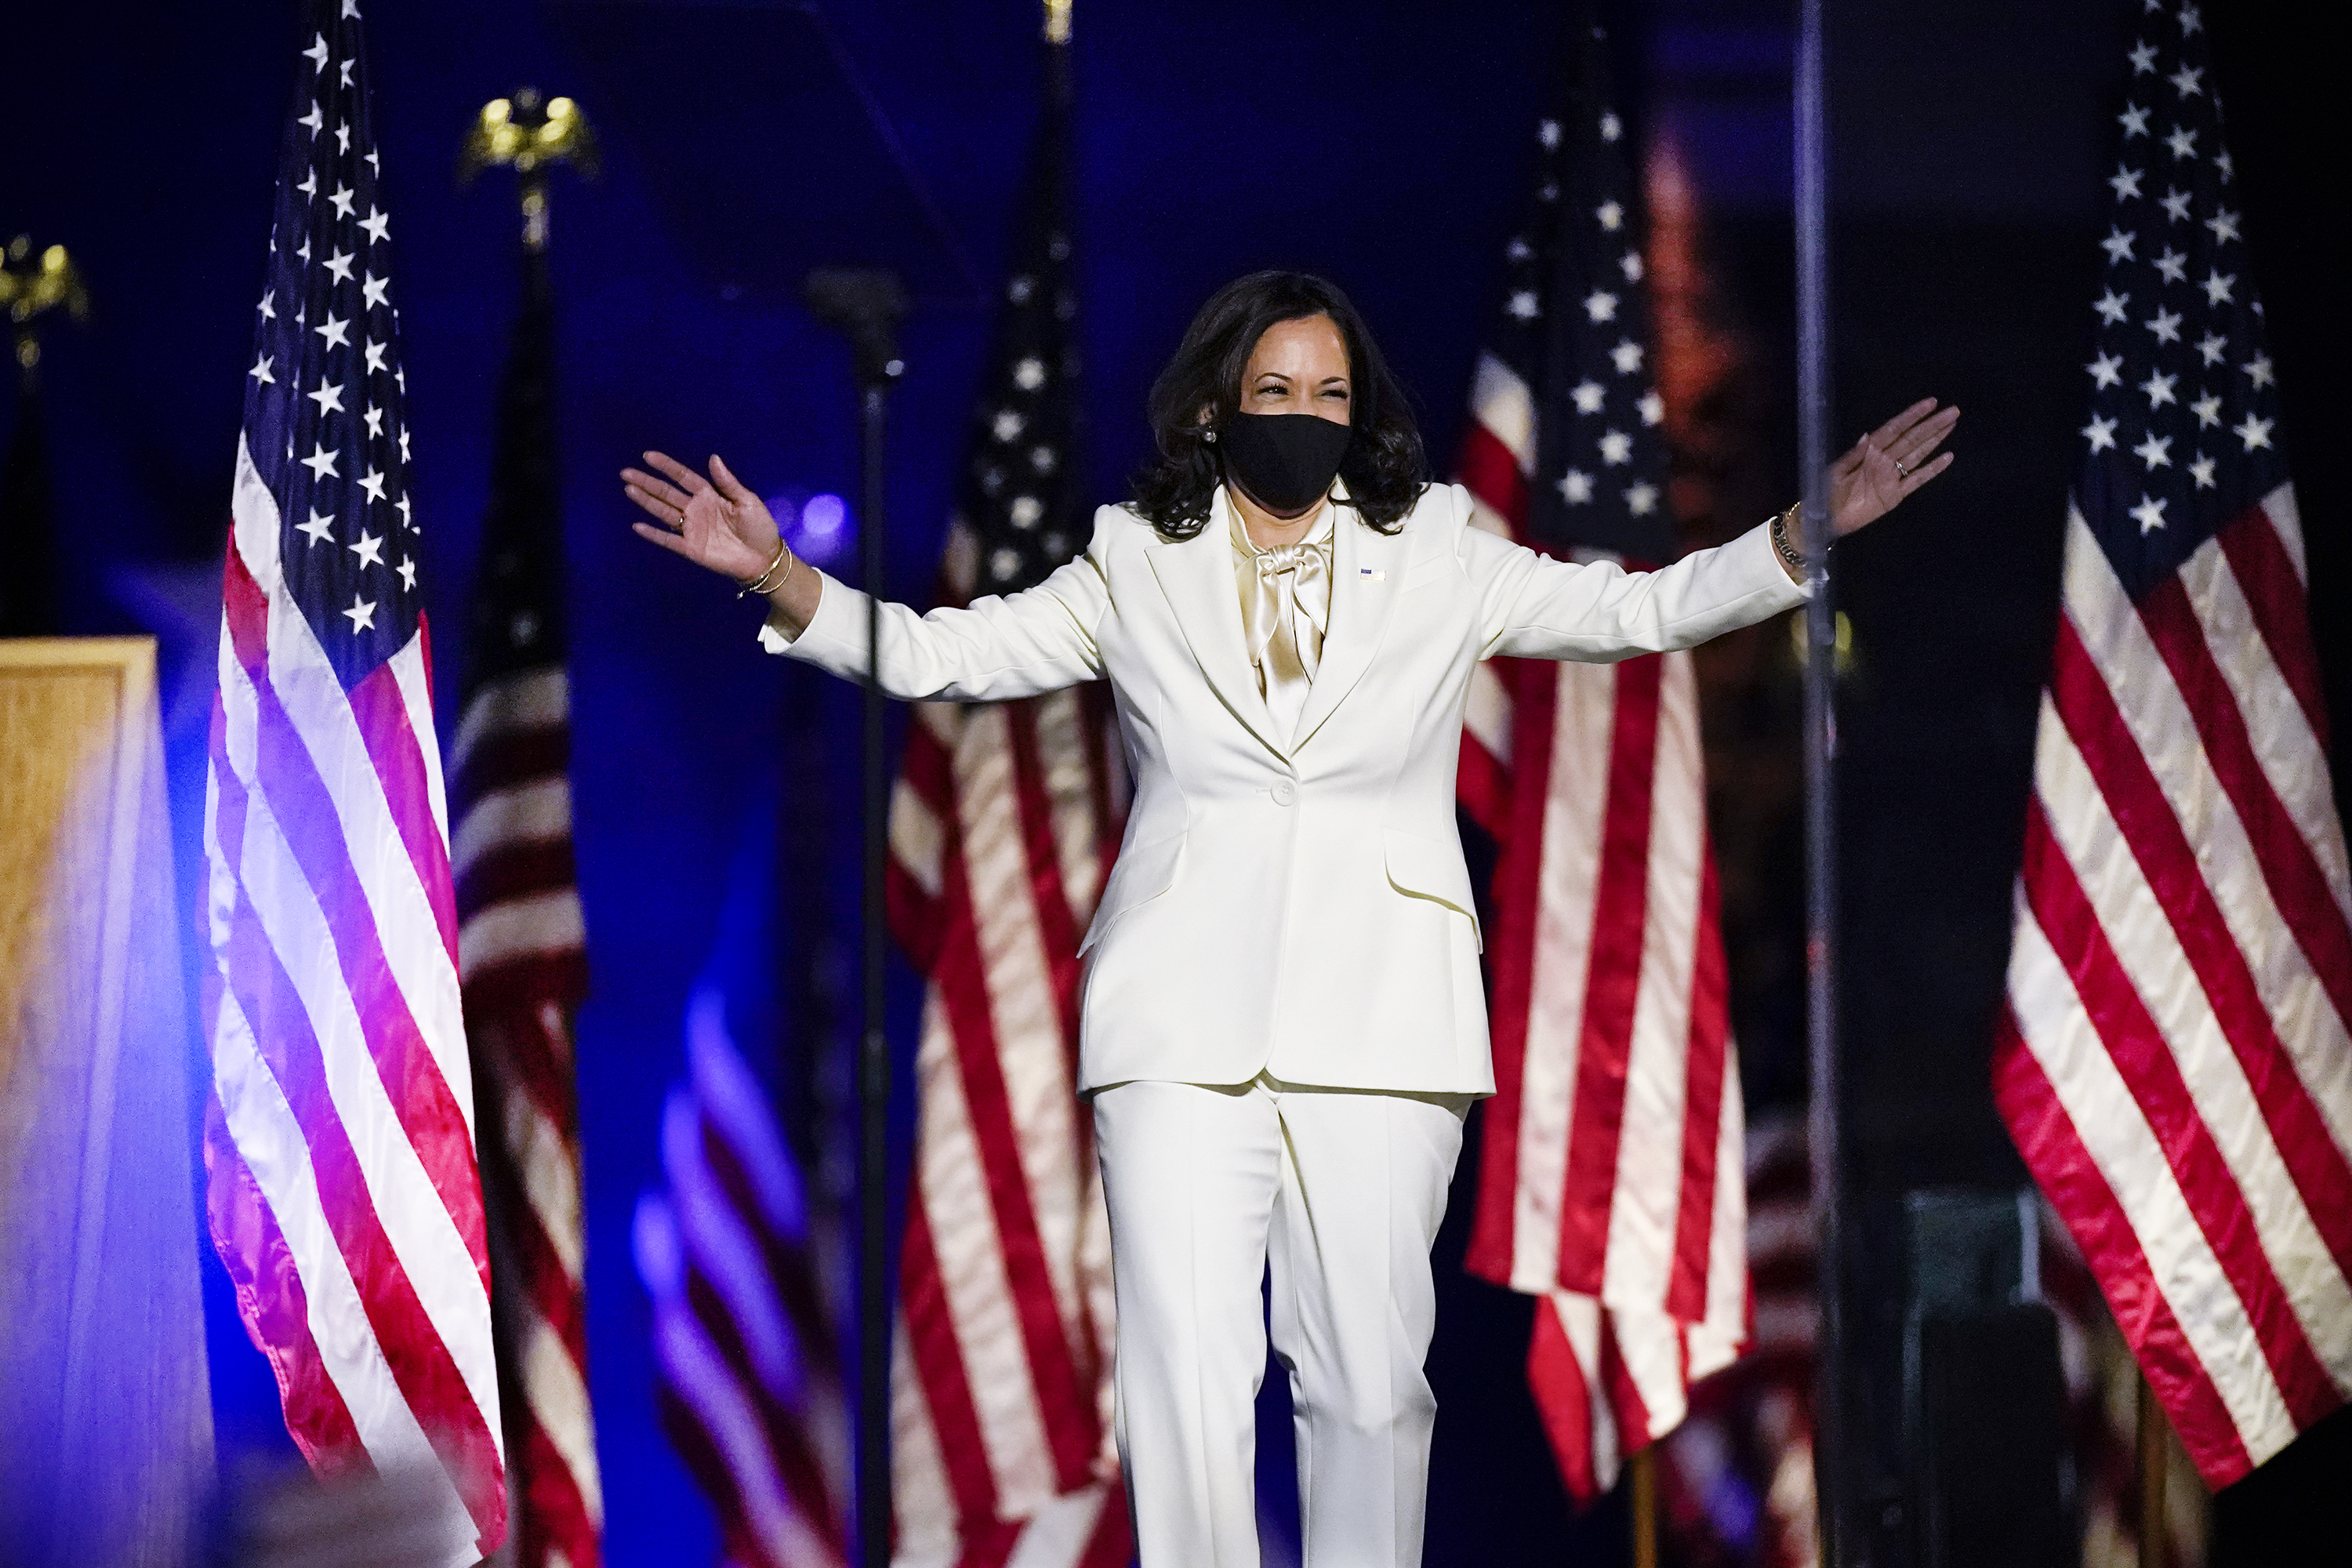 Harris spreads her arms as if hugging the crowd before her in a well-tailored white suit, white silk pussy-bow blouse, and black face mask. Behind her is a row of US flags, and she is illuminated by blue spotlights.